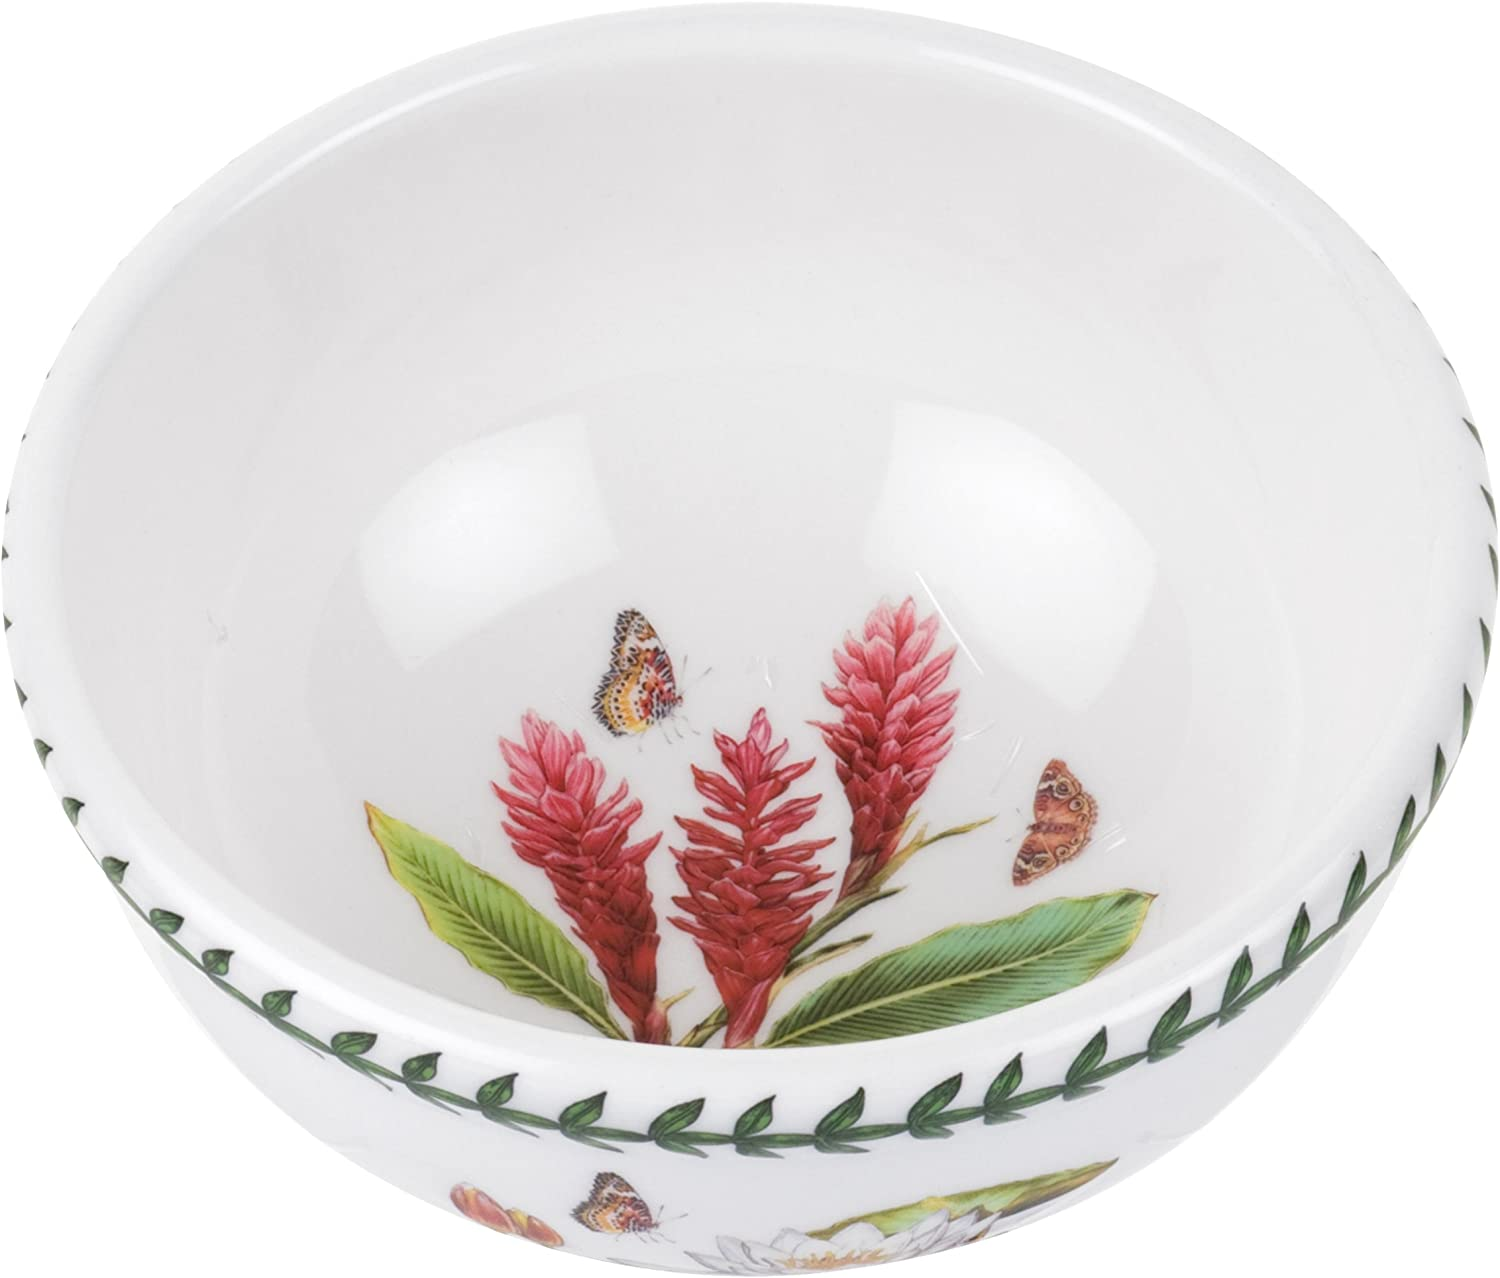 Portmeirion Exotic Botanic Garden Individual Fruit Salad Bowl, Set with 6 Assorted Motifs